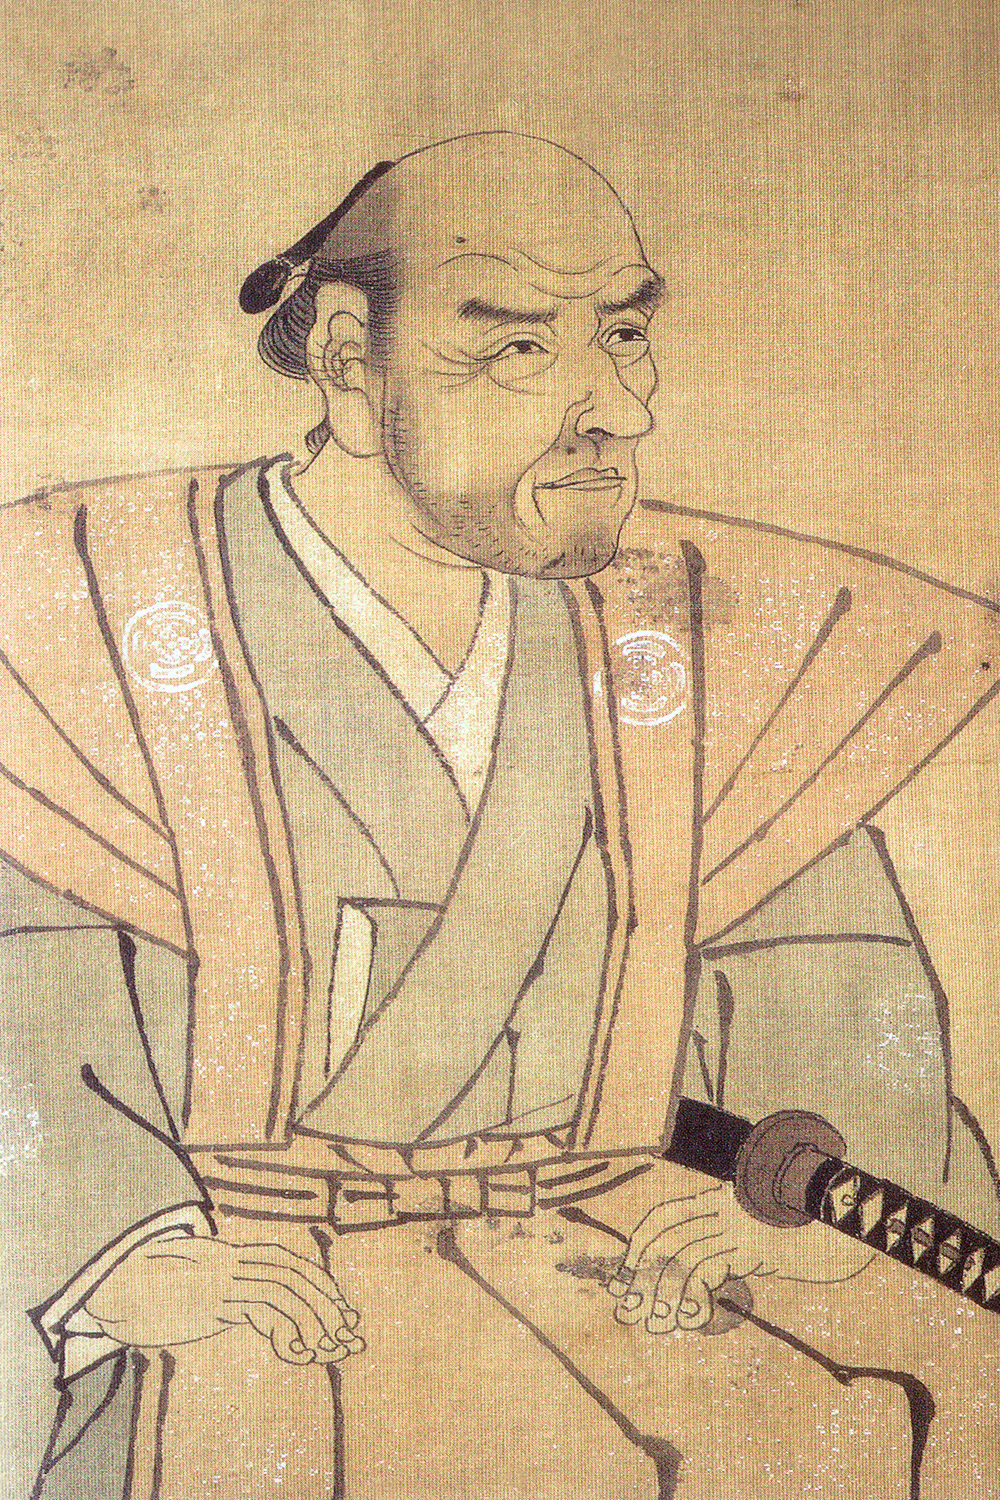 /upload.wikimedia.org/wikipedia/commons/2/29/Ninomiya-Sontoku.jpg